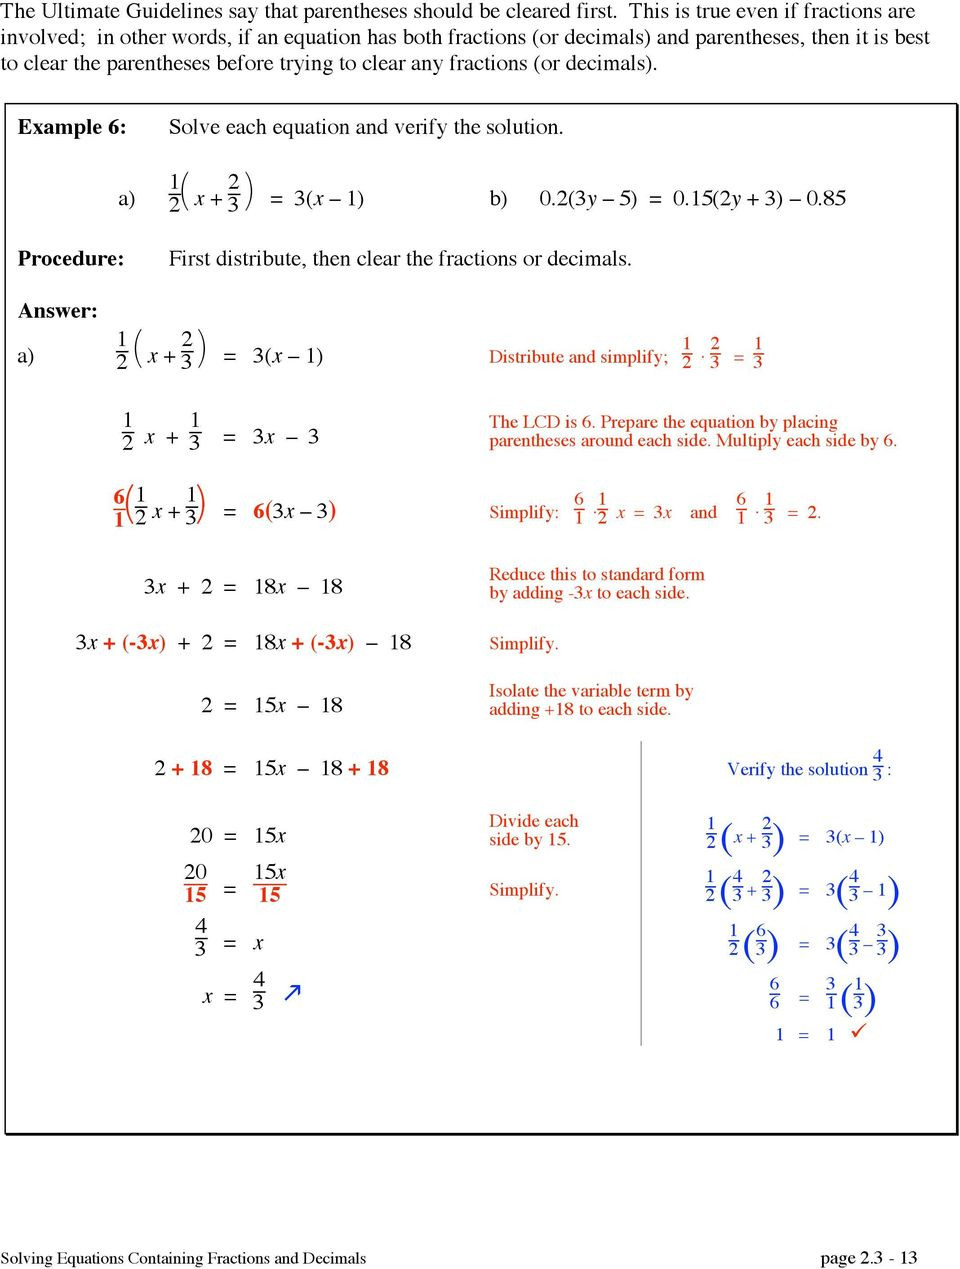 Solving Equations with Fractions Worksheet solving Equations by Clearing Fractions and Decimals